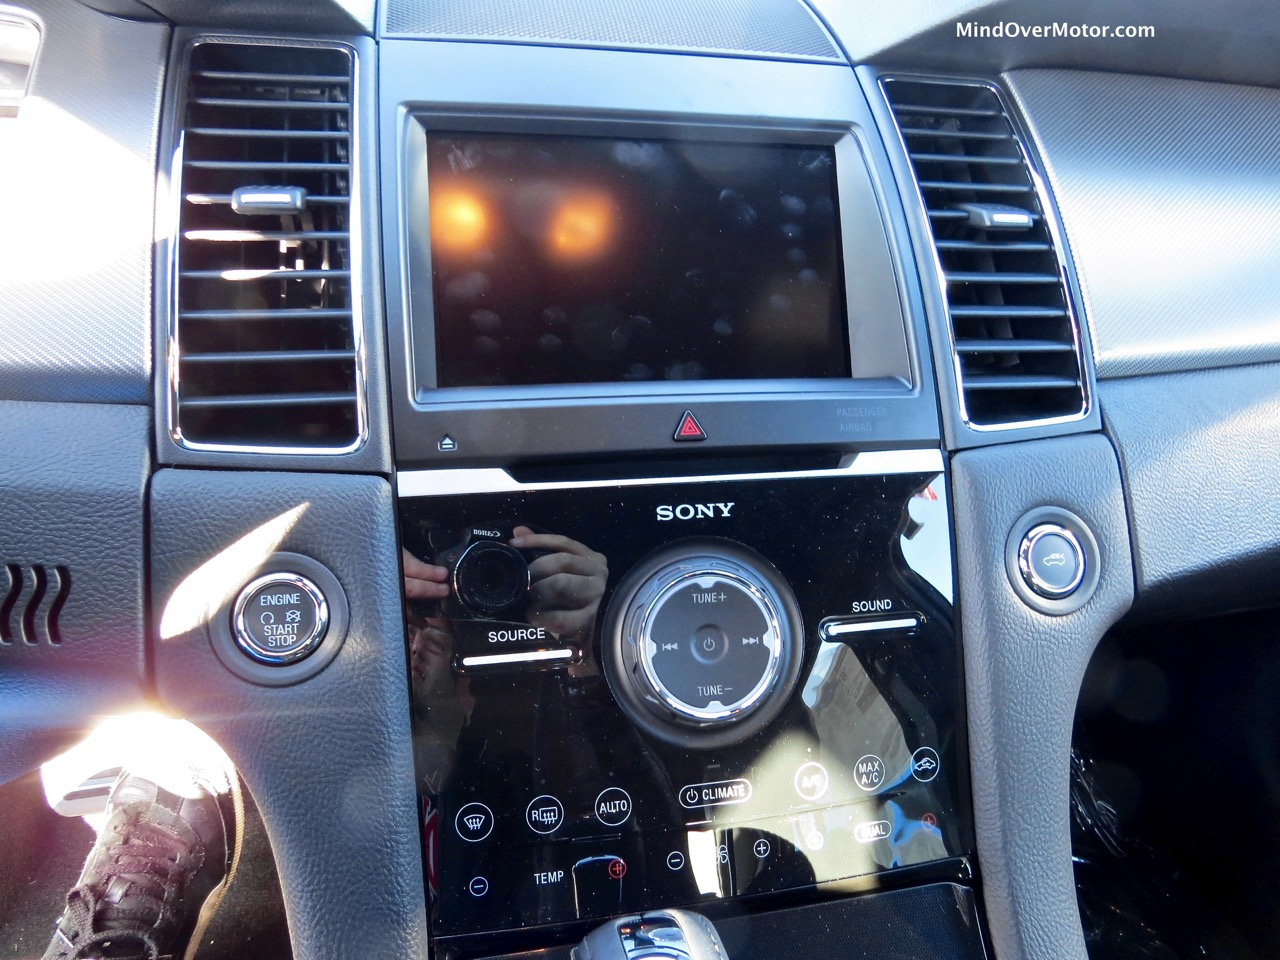 2015 Ford Taurus SHO Center Stack